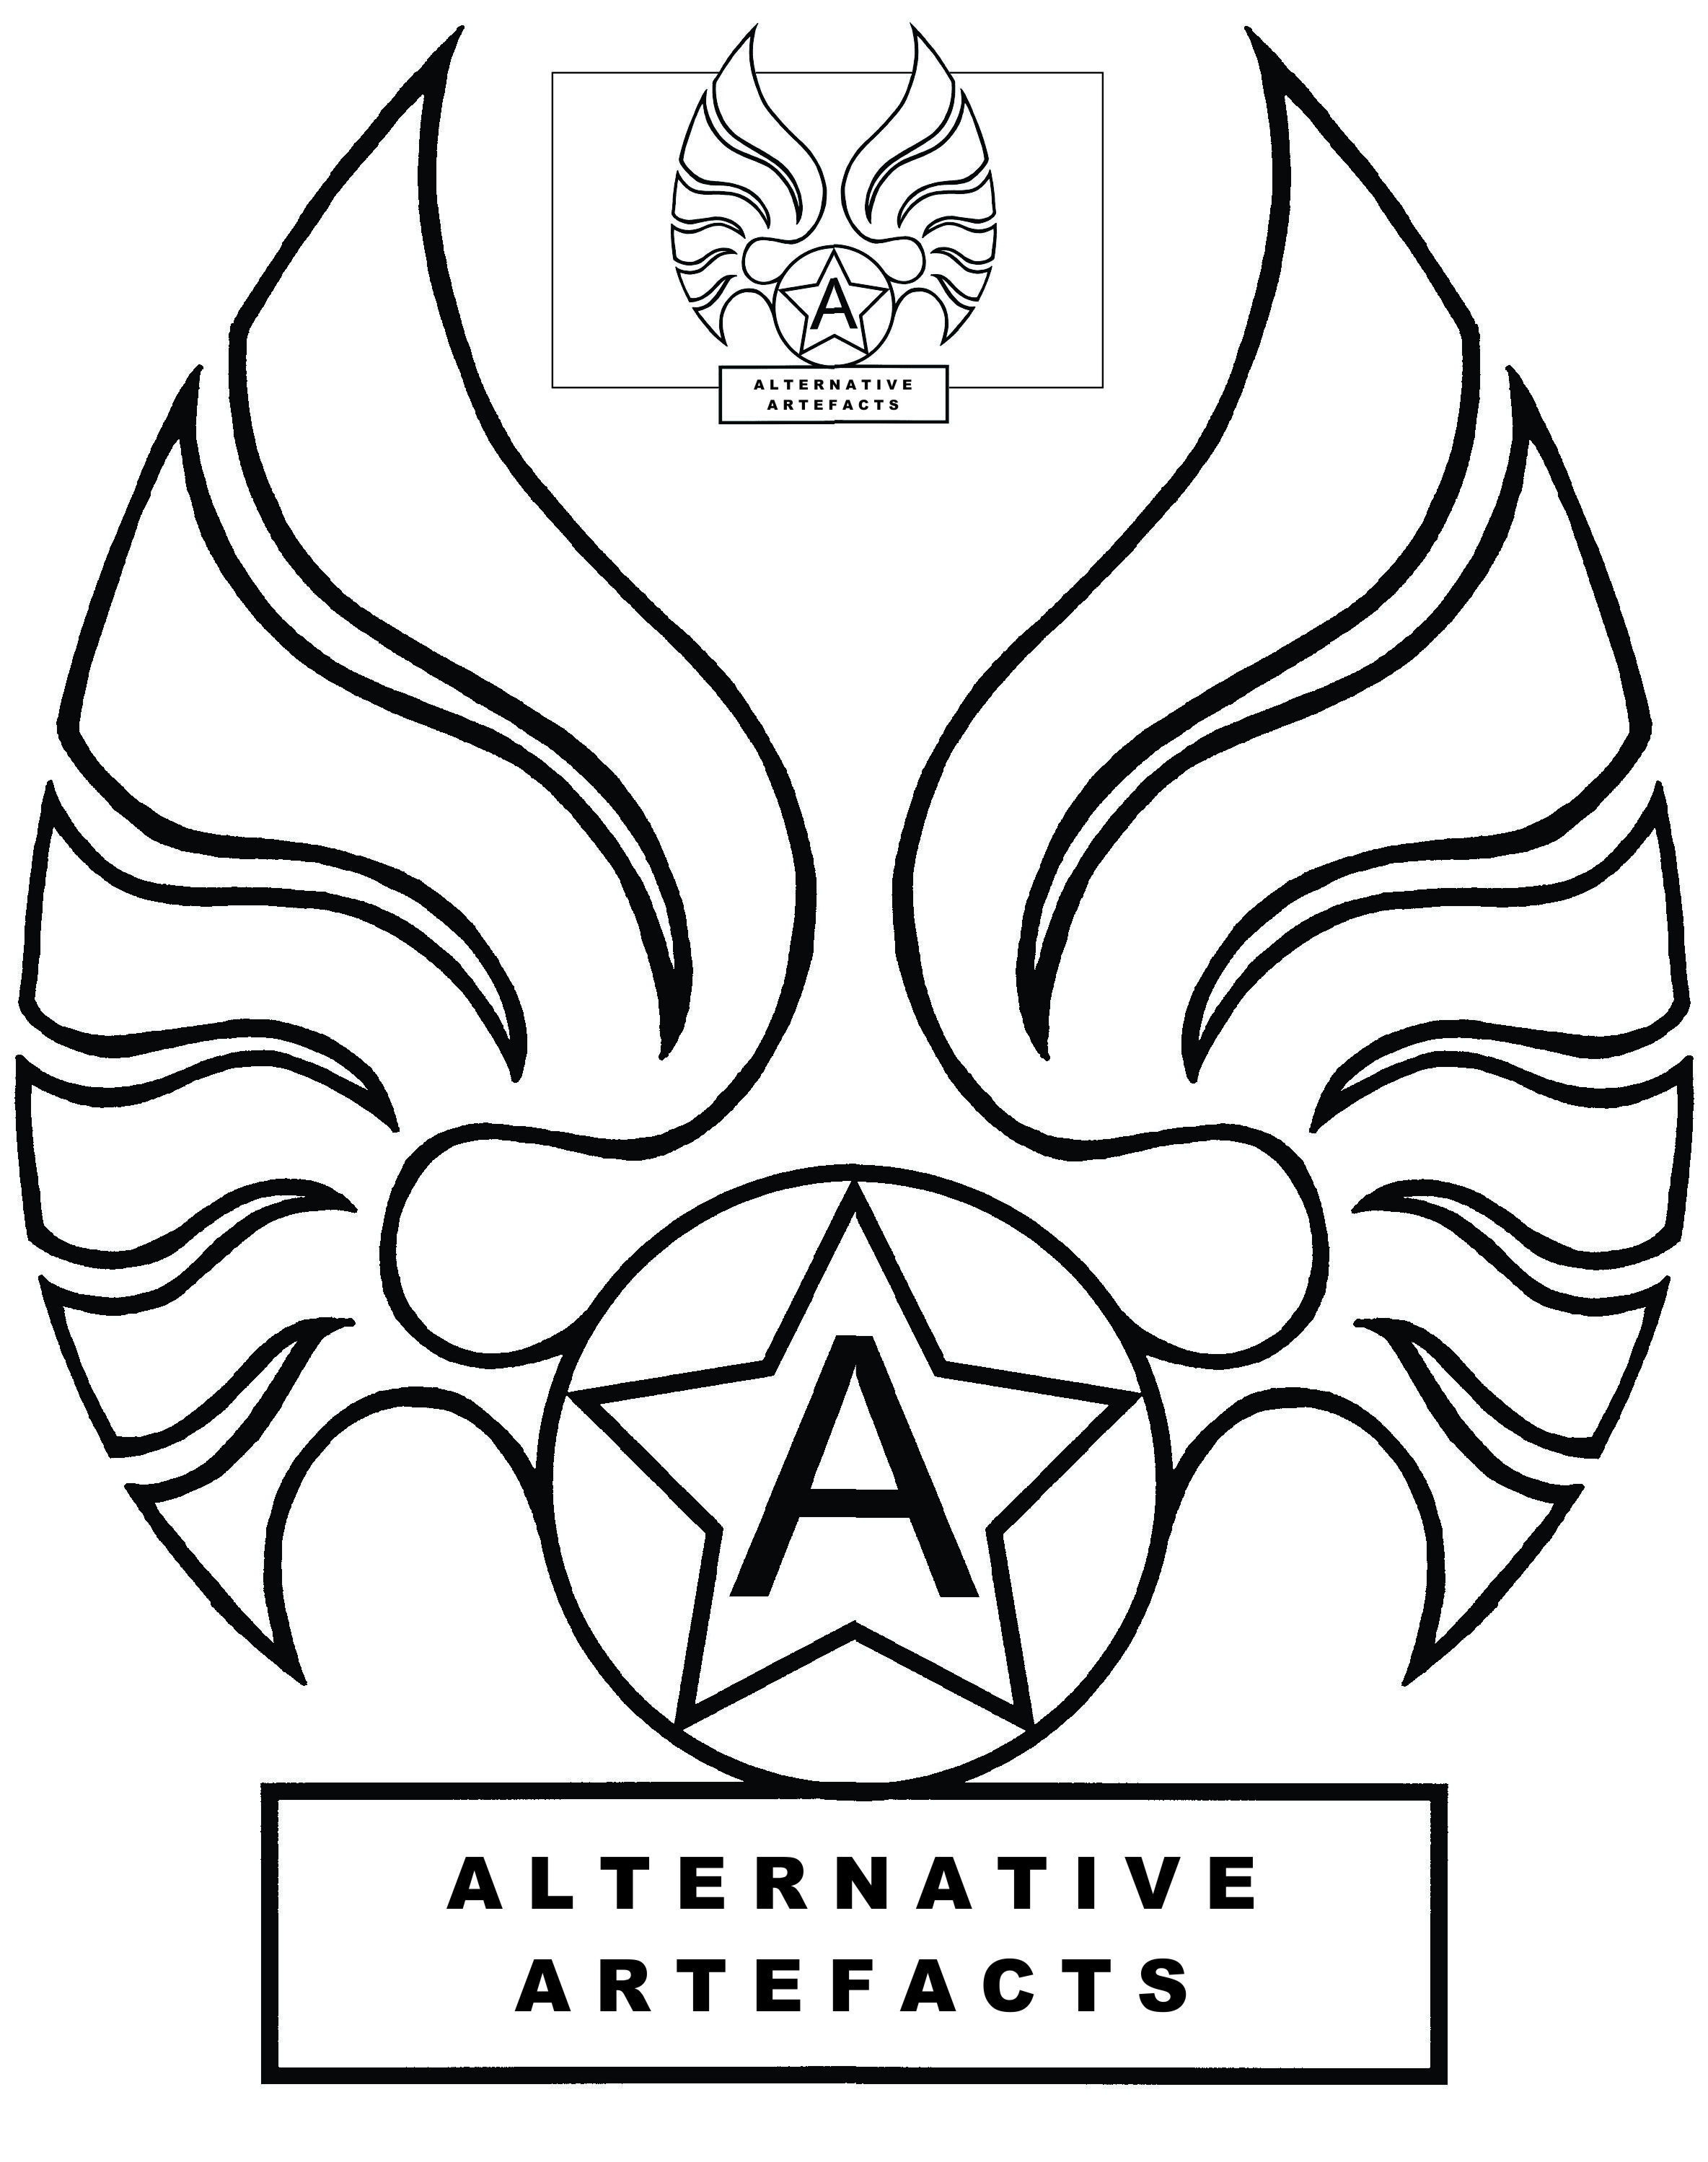 Alternative Artefacts winged logo Ap 4 with tag.jpg